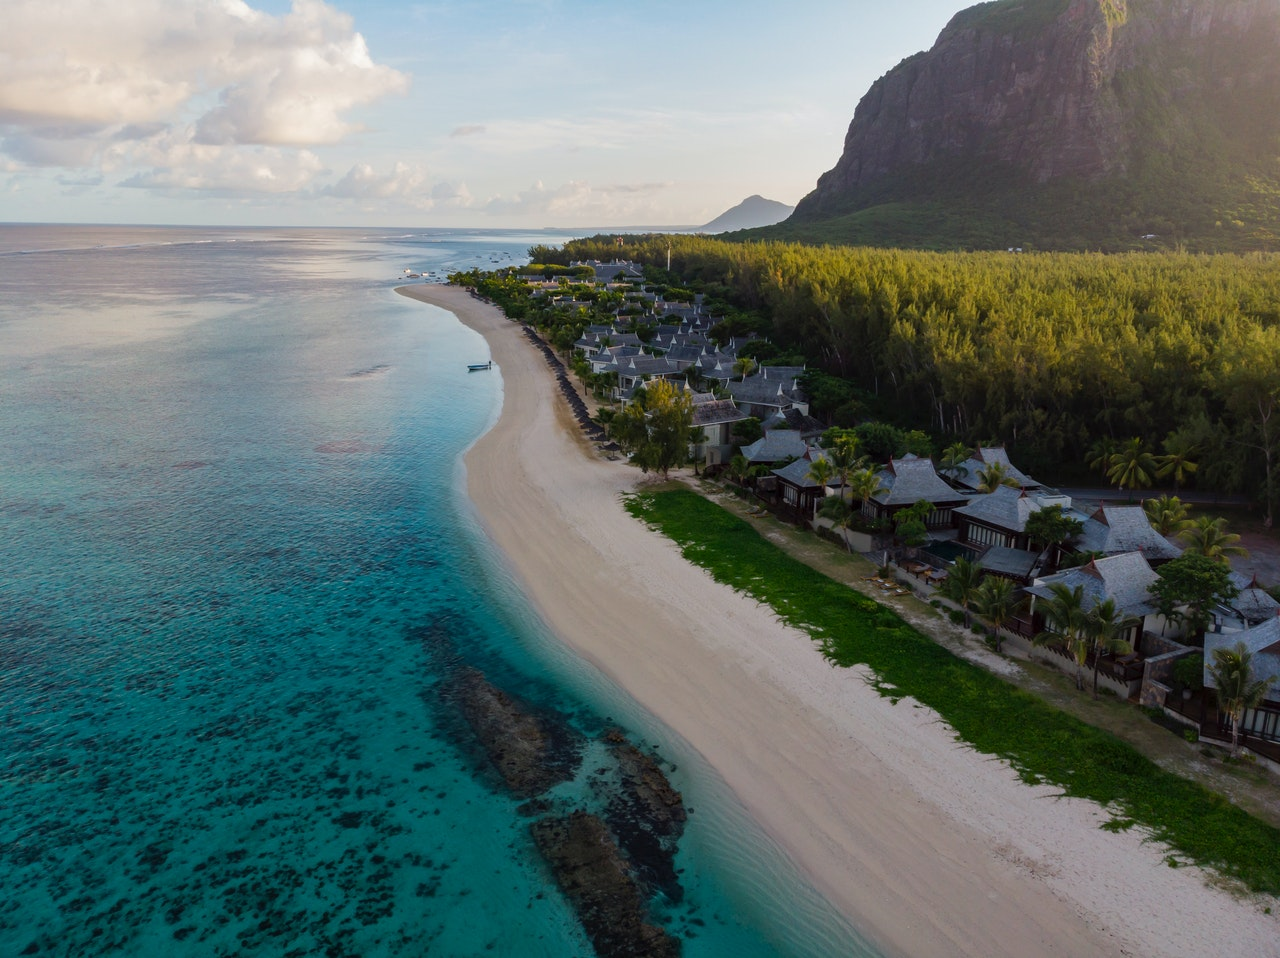 Mauritius coasline with mountains, houses, and trees along the beach